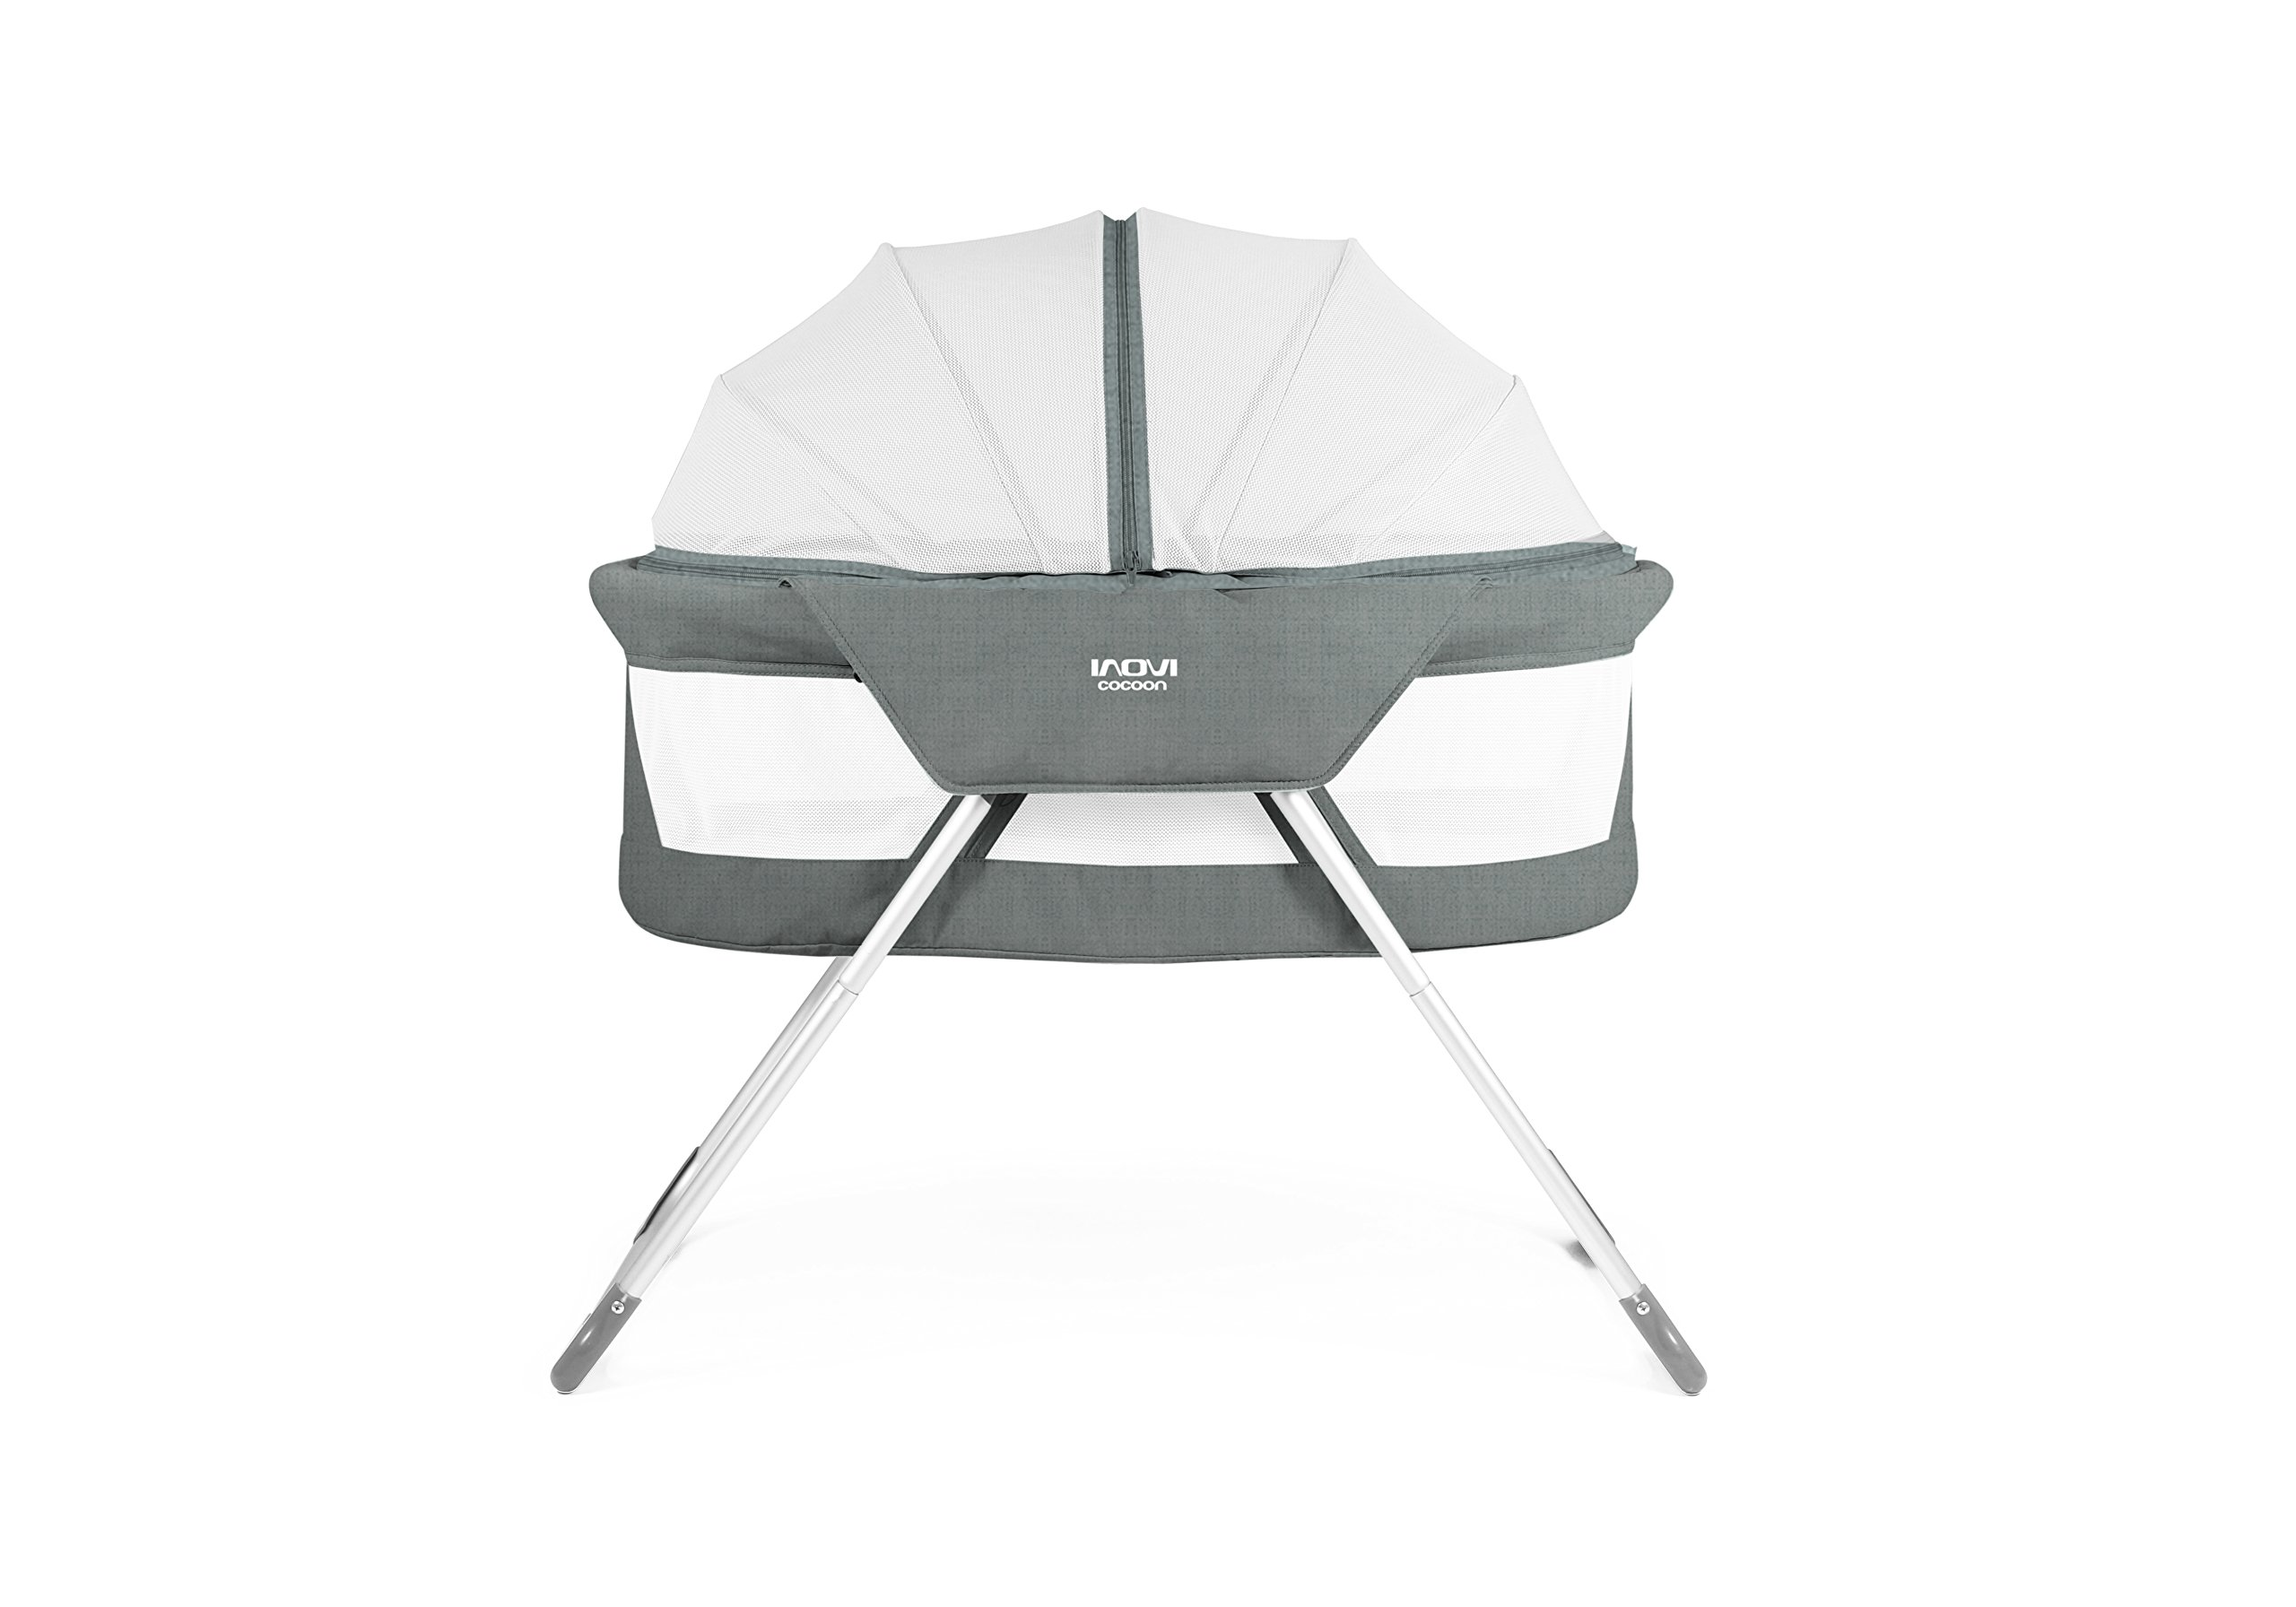 Inovi Cocoon Folding Moses Crib Travel Cot Grey Inovi Compact and lightweight for use at home or when travelling The Inovi Cocoon provides a safe andsecure sleeping environment for your baby. Suitable from birth up to approx. 6 months old 2